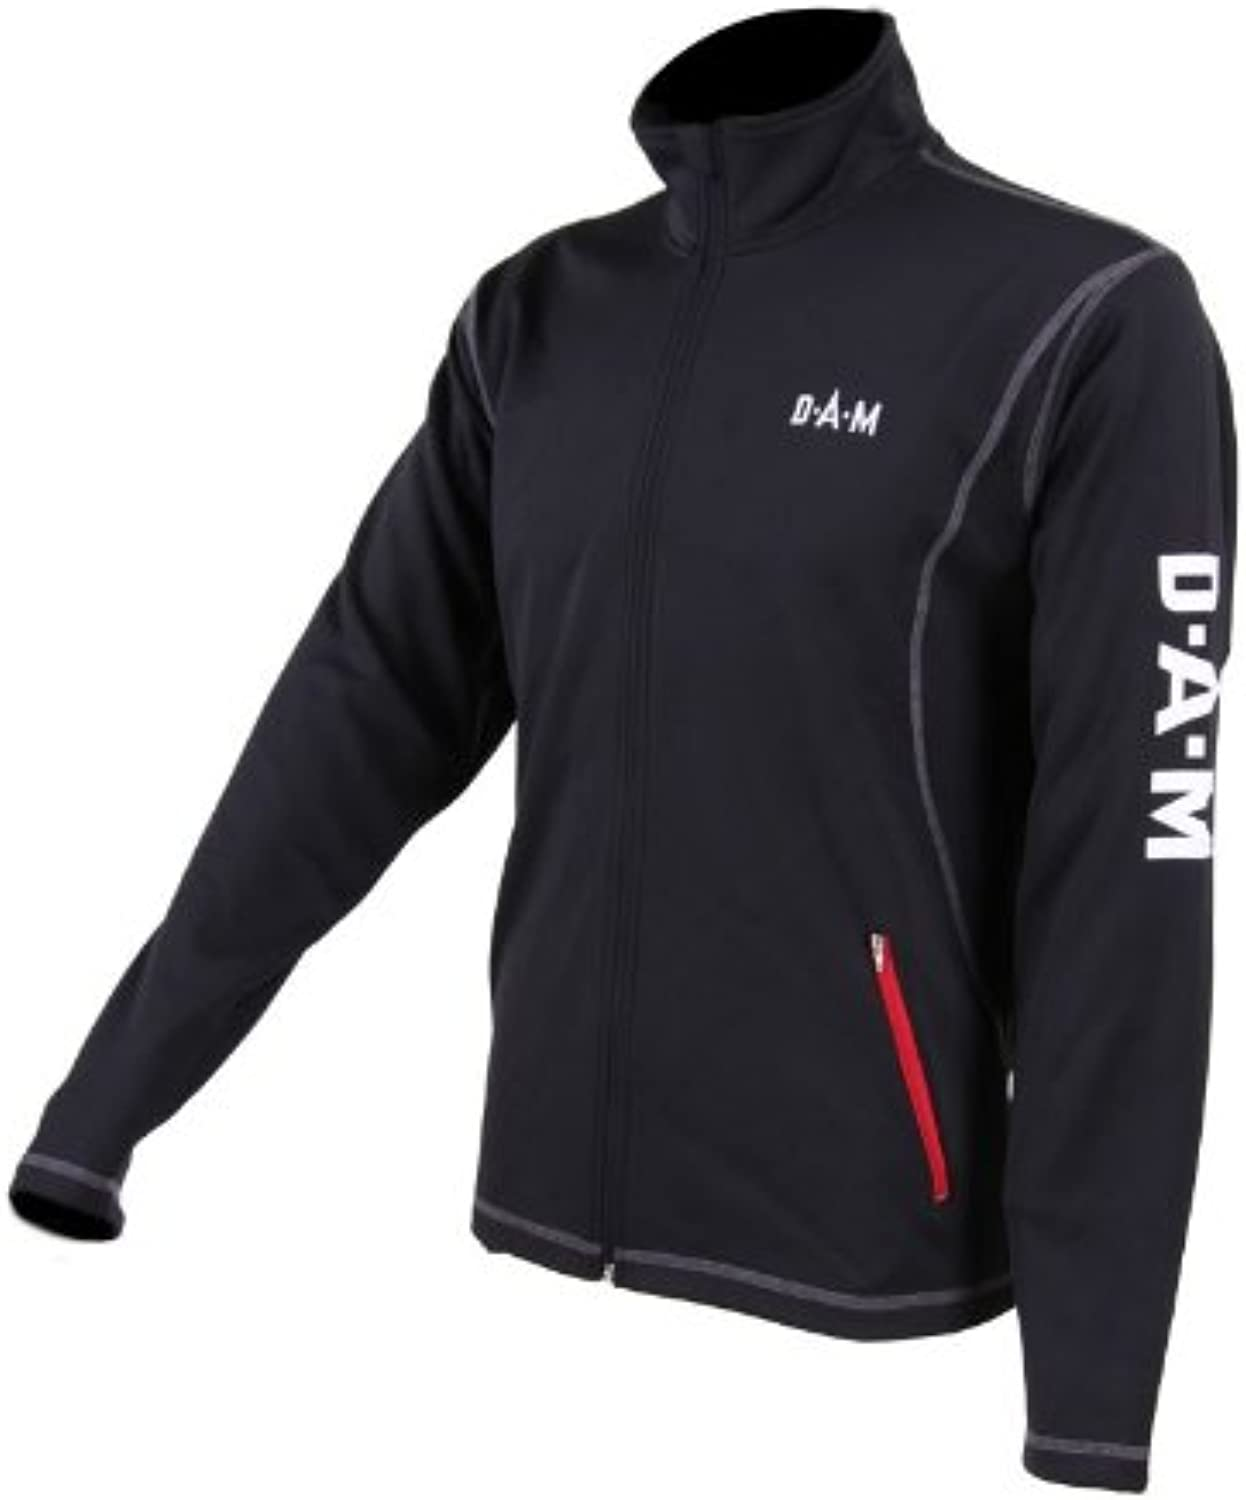 DAM MICROFLEECE JACKET - M